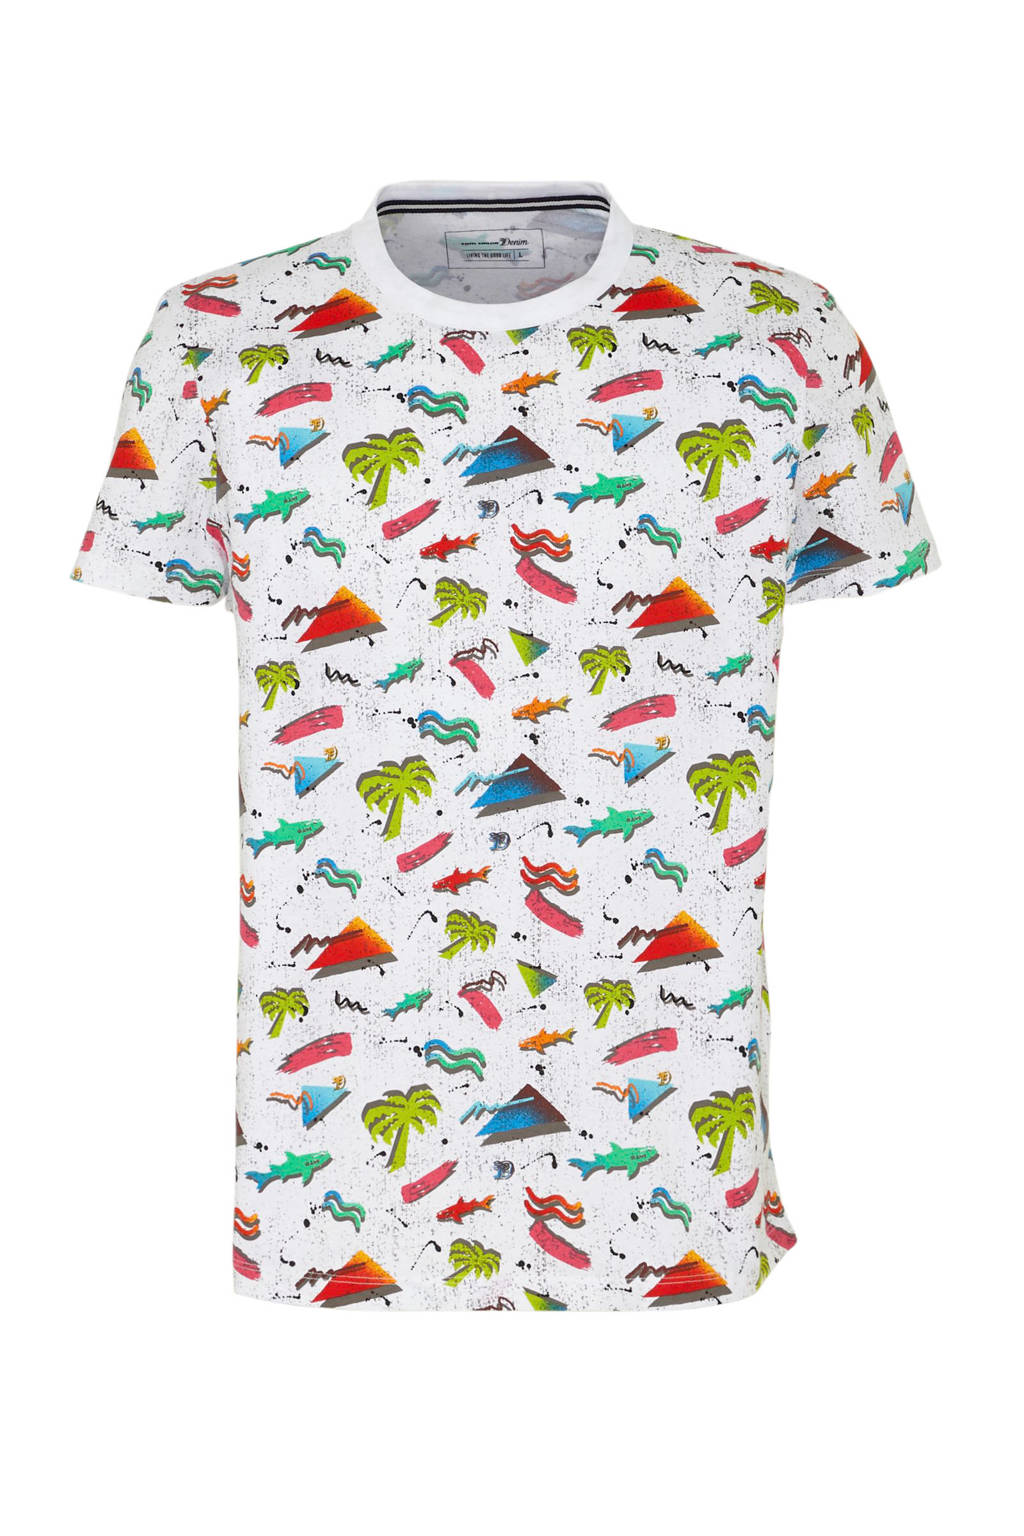 Tom Tailor T-shirt met all over print, Wit/multi